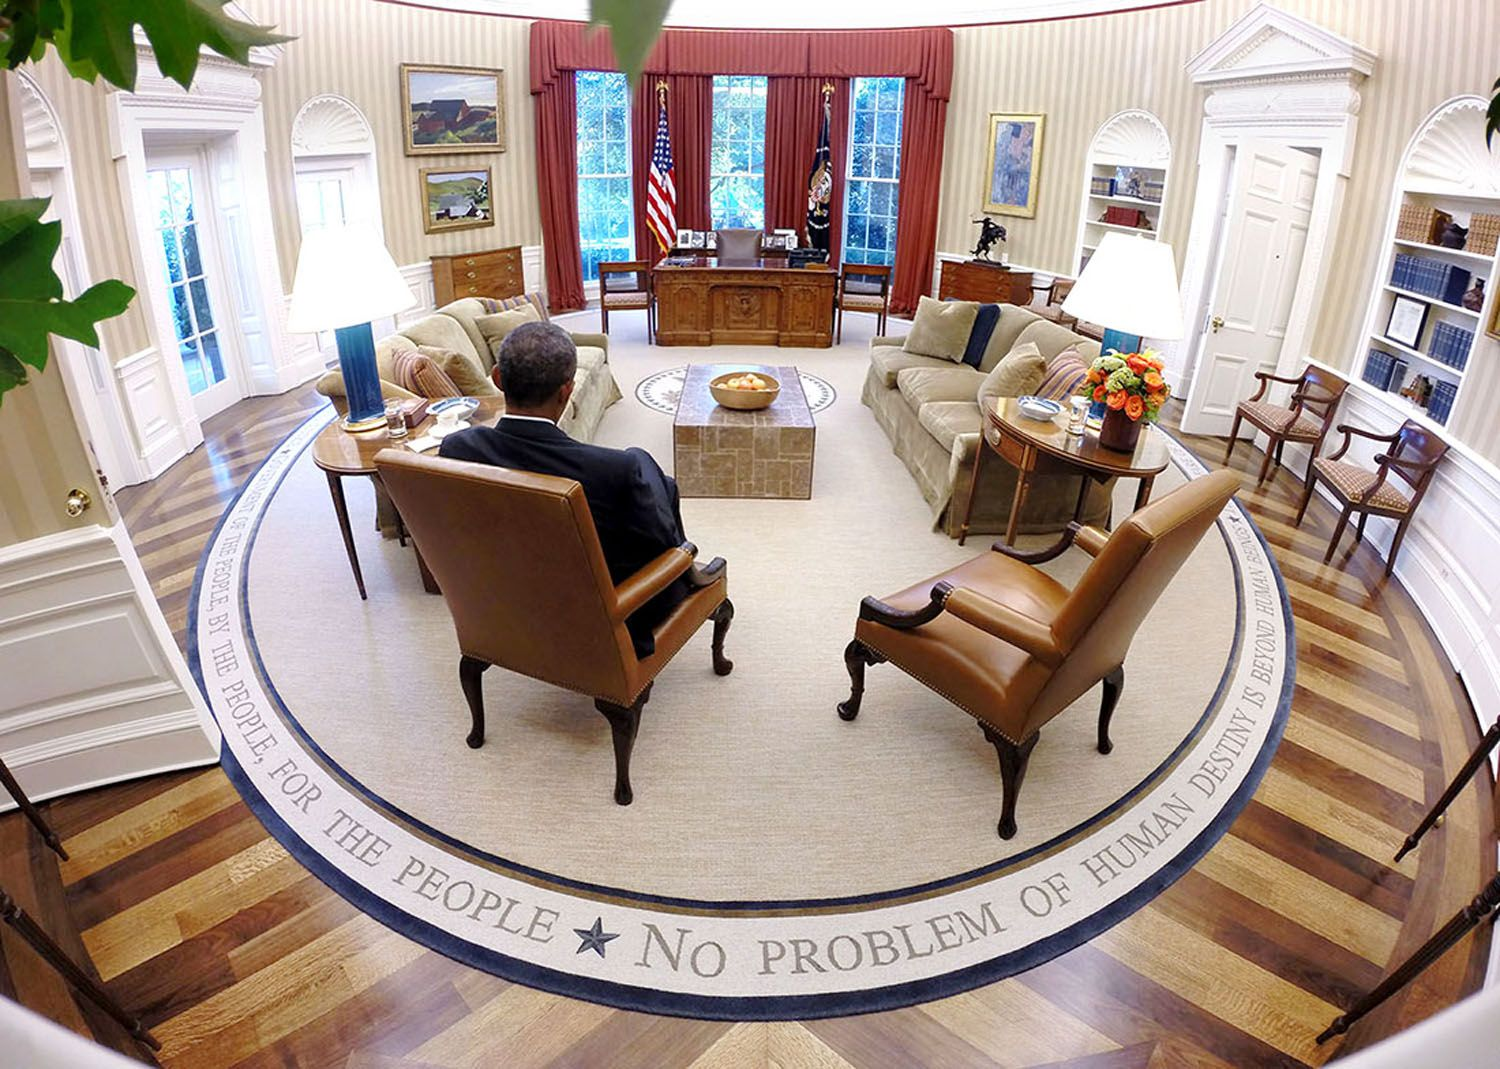 oval office fireplace. 3538223b9707859e72f0f420b6bd3fff.jpg Oval Office Fireplace